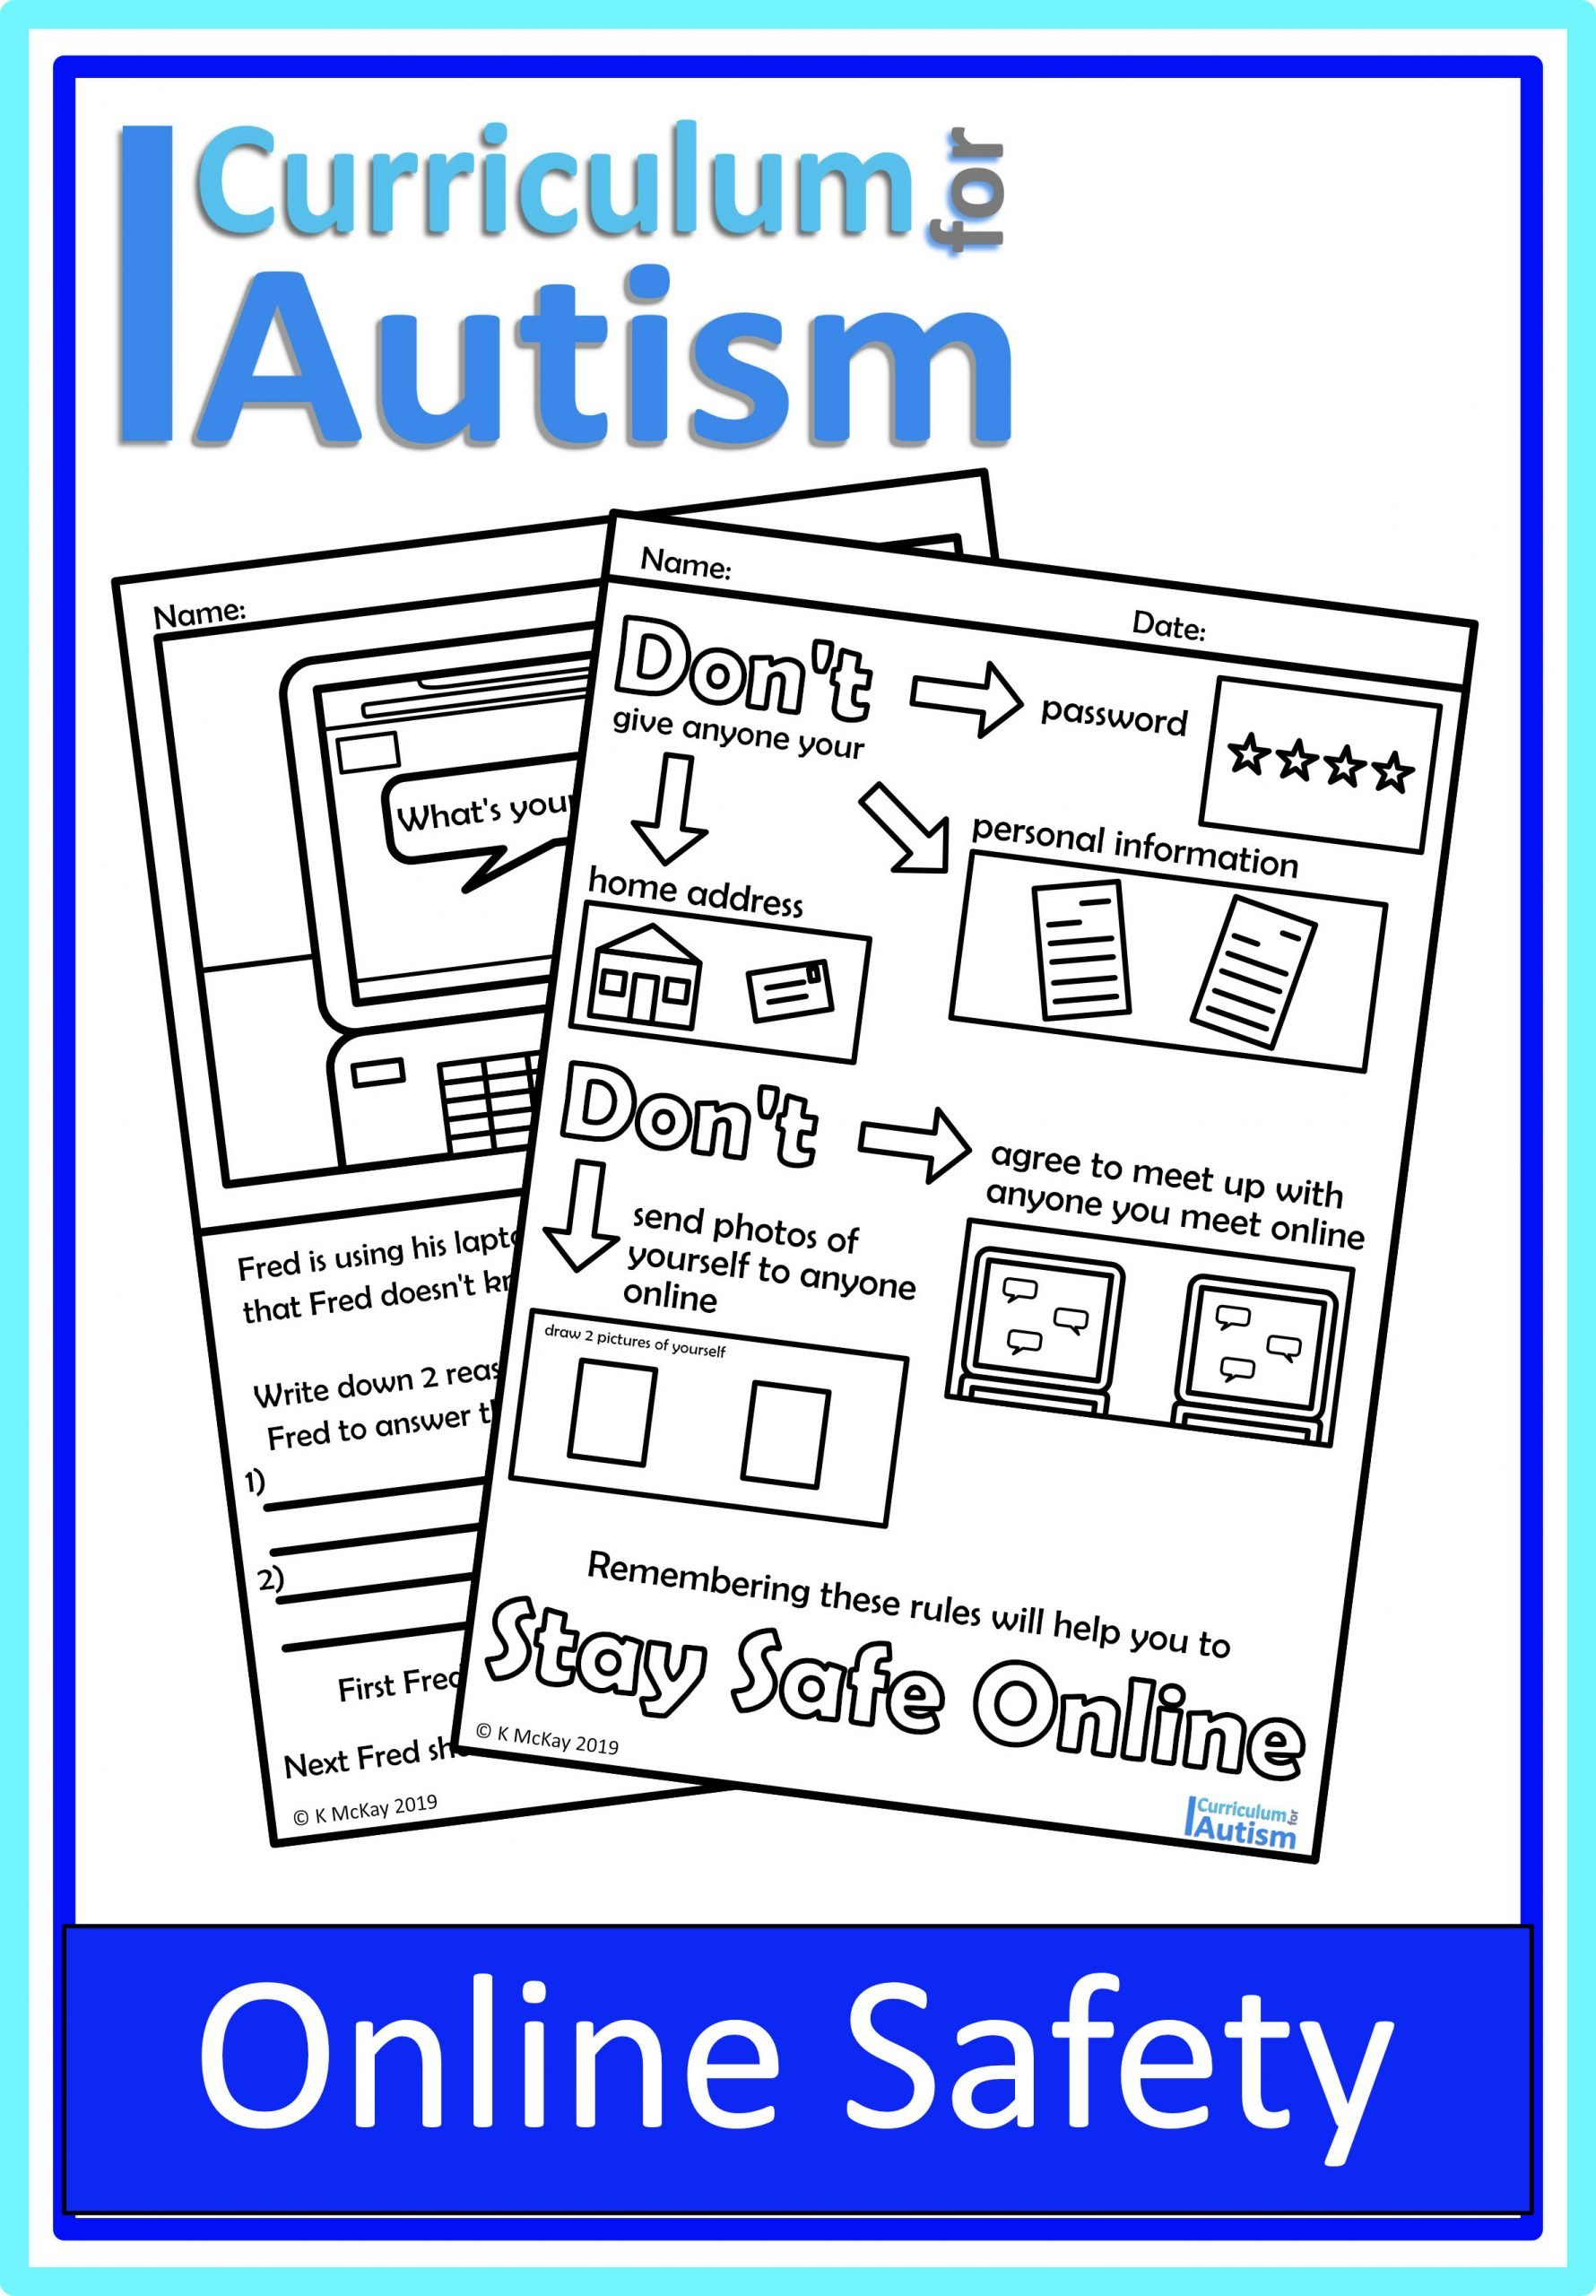 Social Skills Worksheets for Autism Line Safety Life Skills Worksheets — Curriculum for Autism